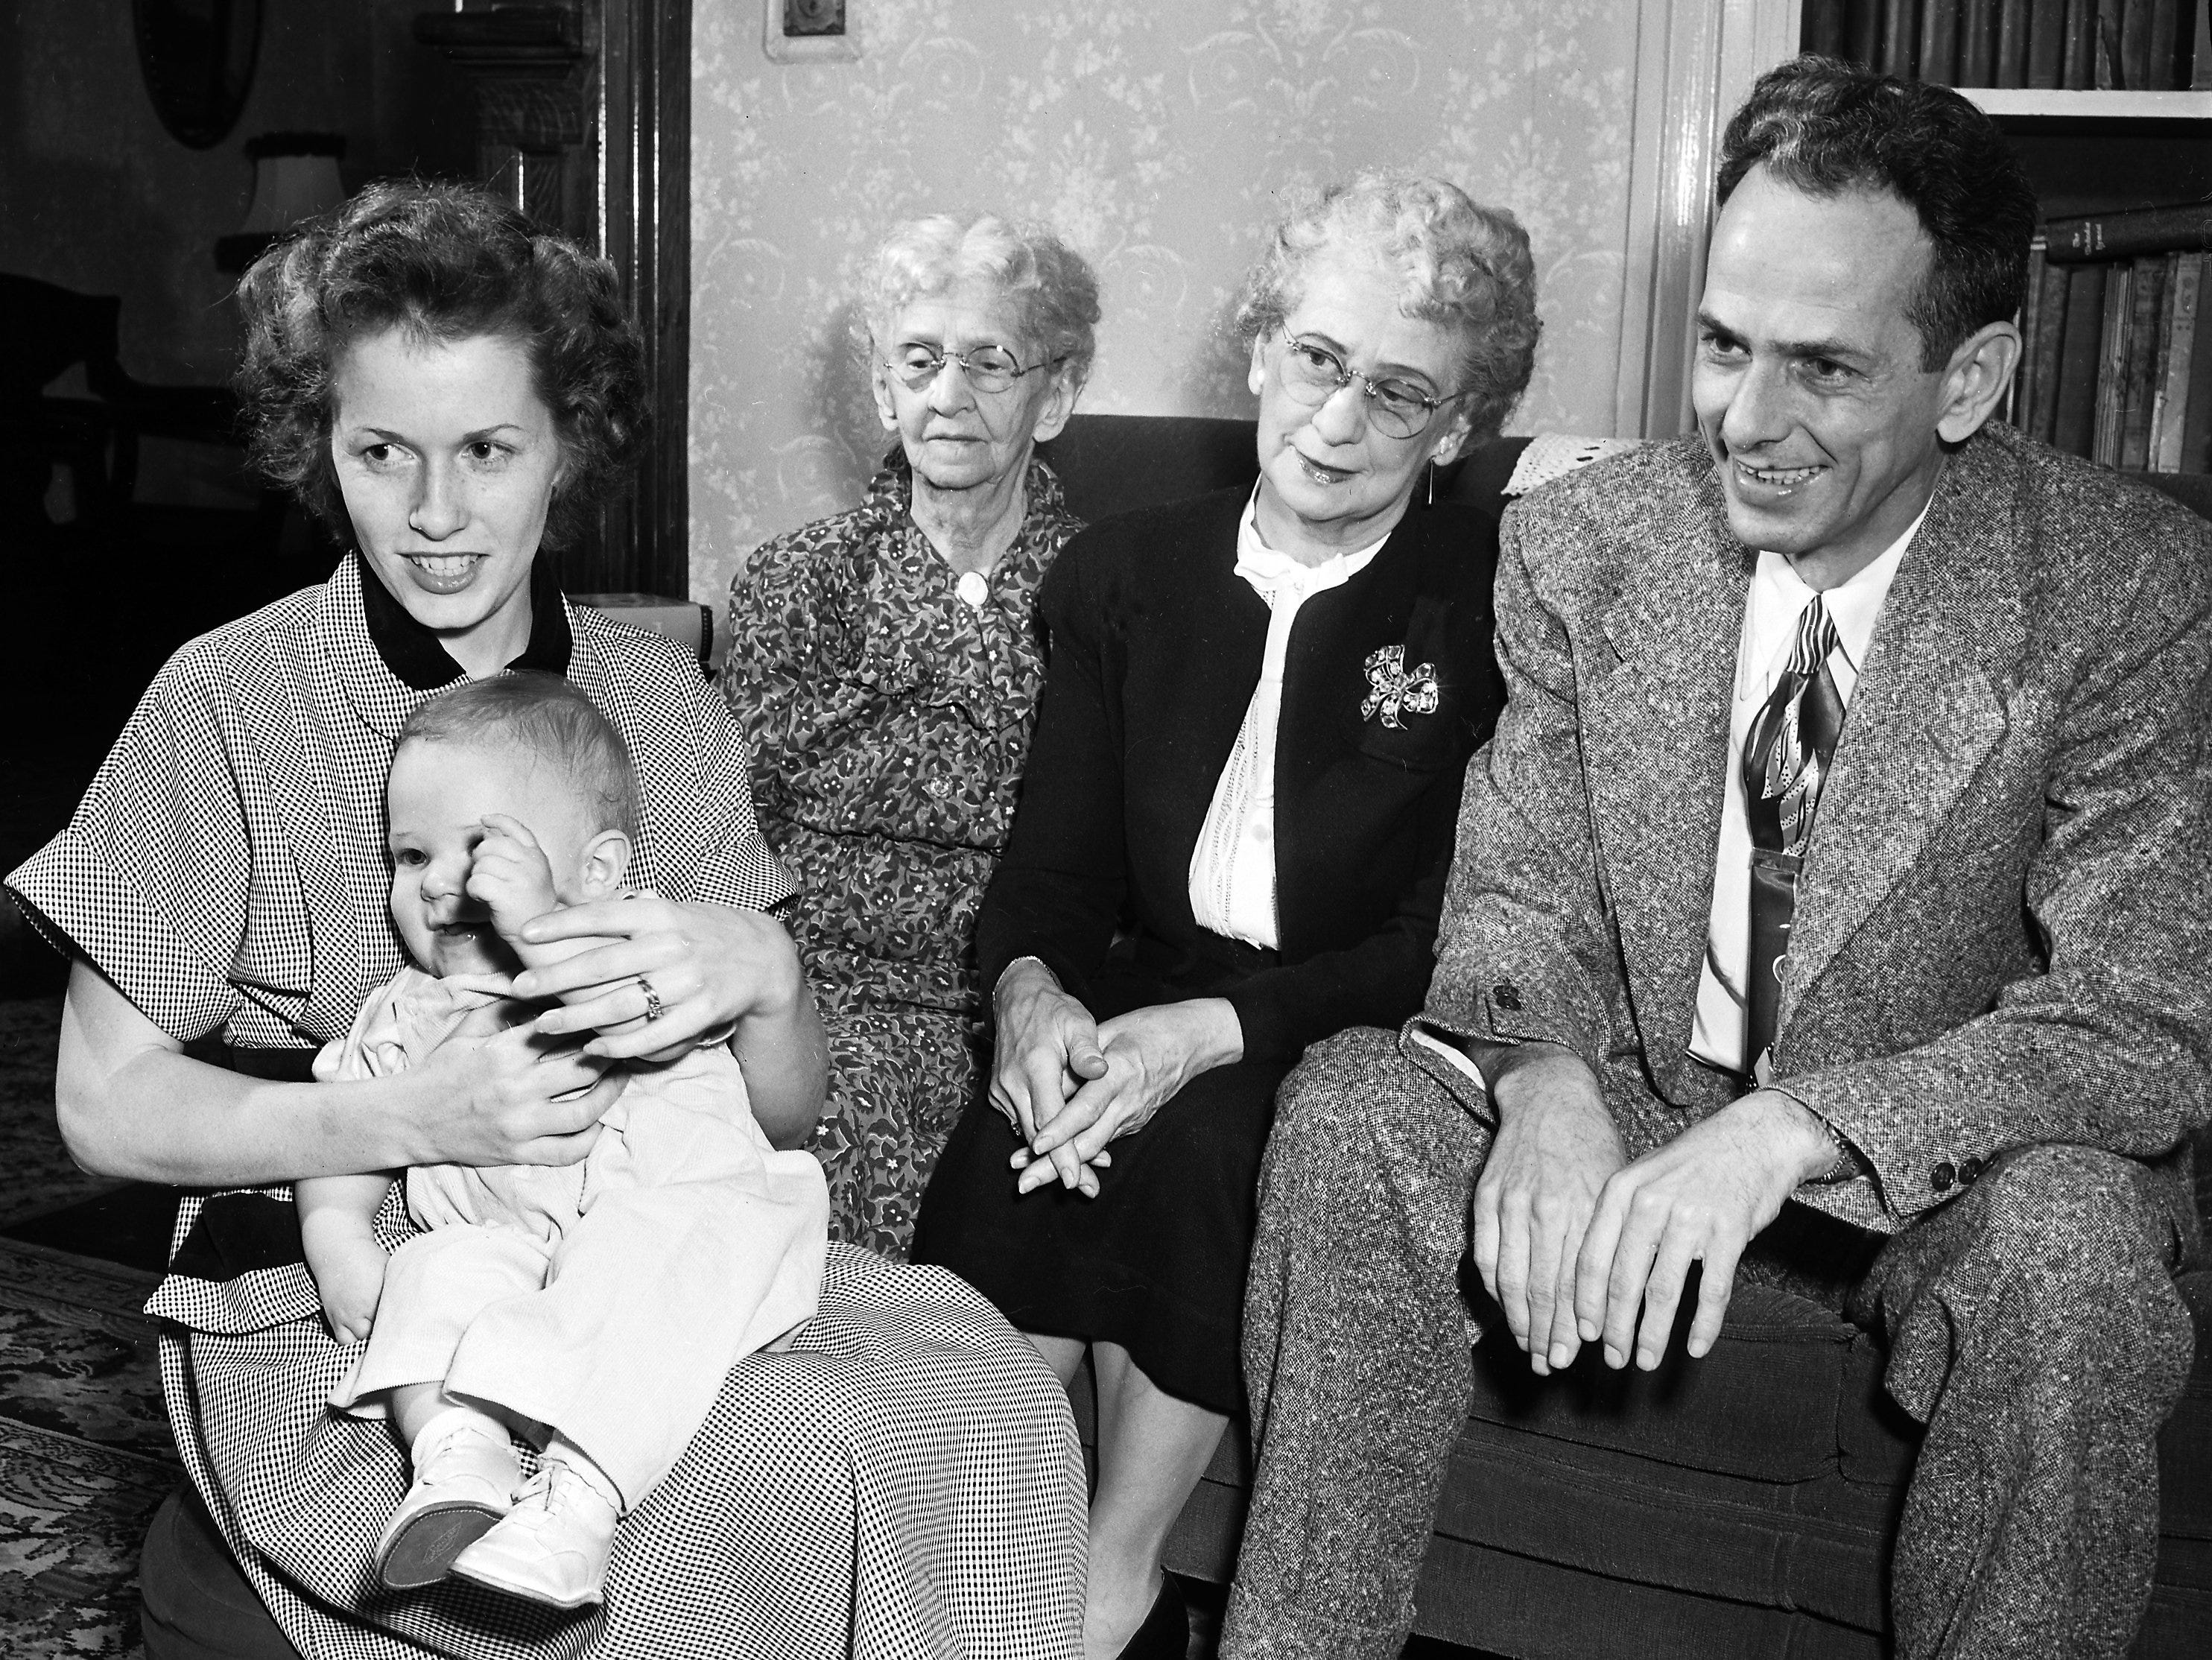 Five generations of the family of Mrs. Kate I. Jones (Center) of 1010 Peabody Avenue assembled at her home in January 1952 for their first reunion.  Present were her great-great-grandson, Gary Walker, her great-granddaughter, Mrs. Gloria Walker, her grandson, Warren Gibson, all of Amarillo, TX and her daughter, Mrs. Olive Gibson (Second Right) of the Peabody address.